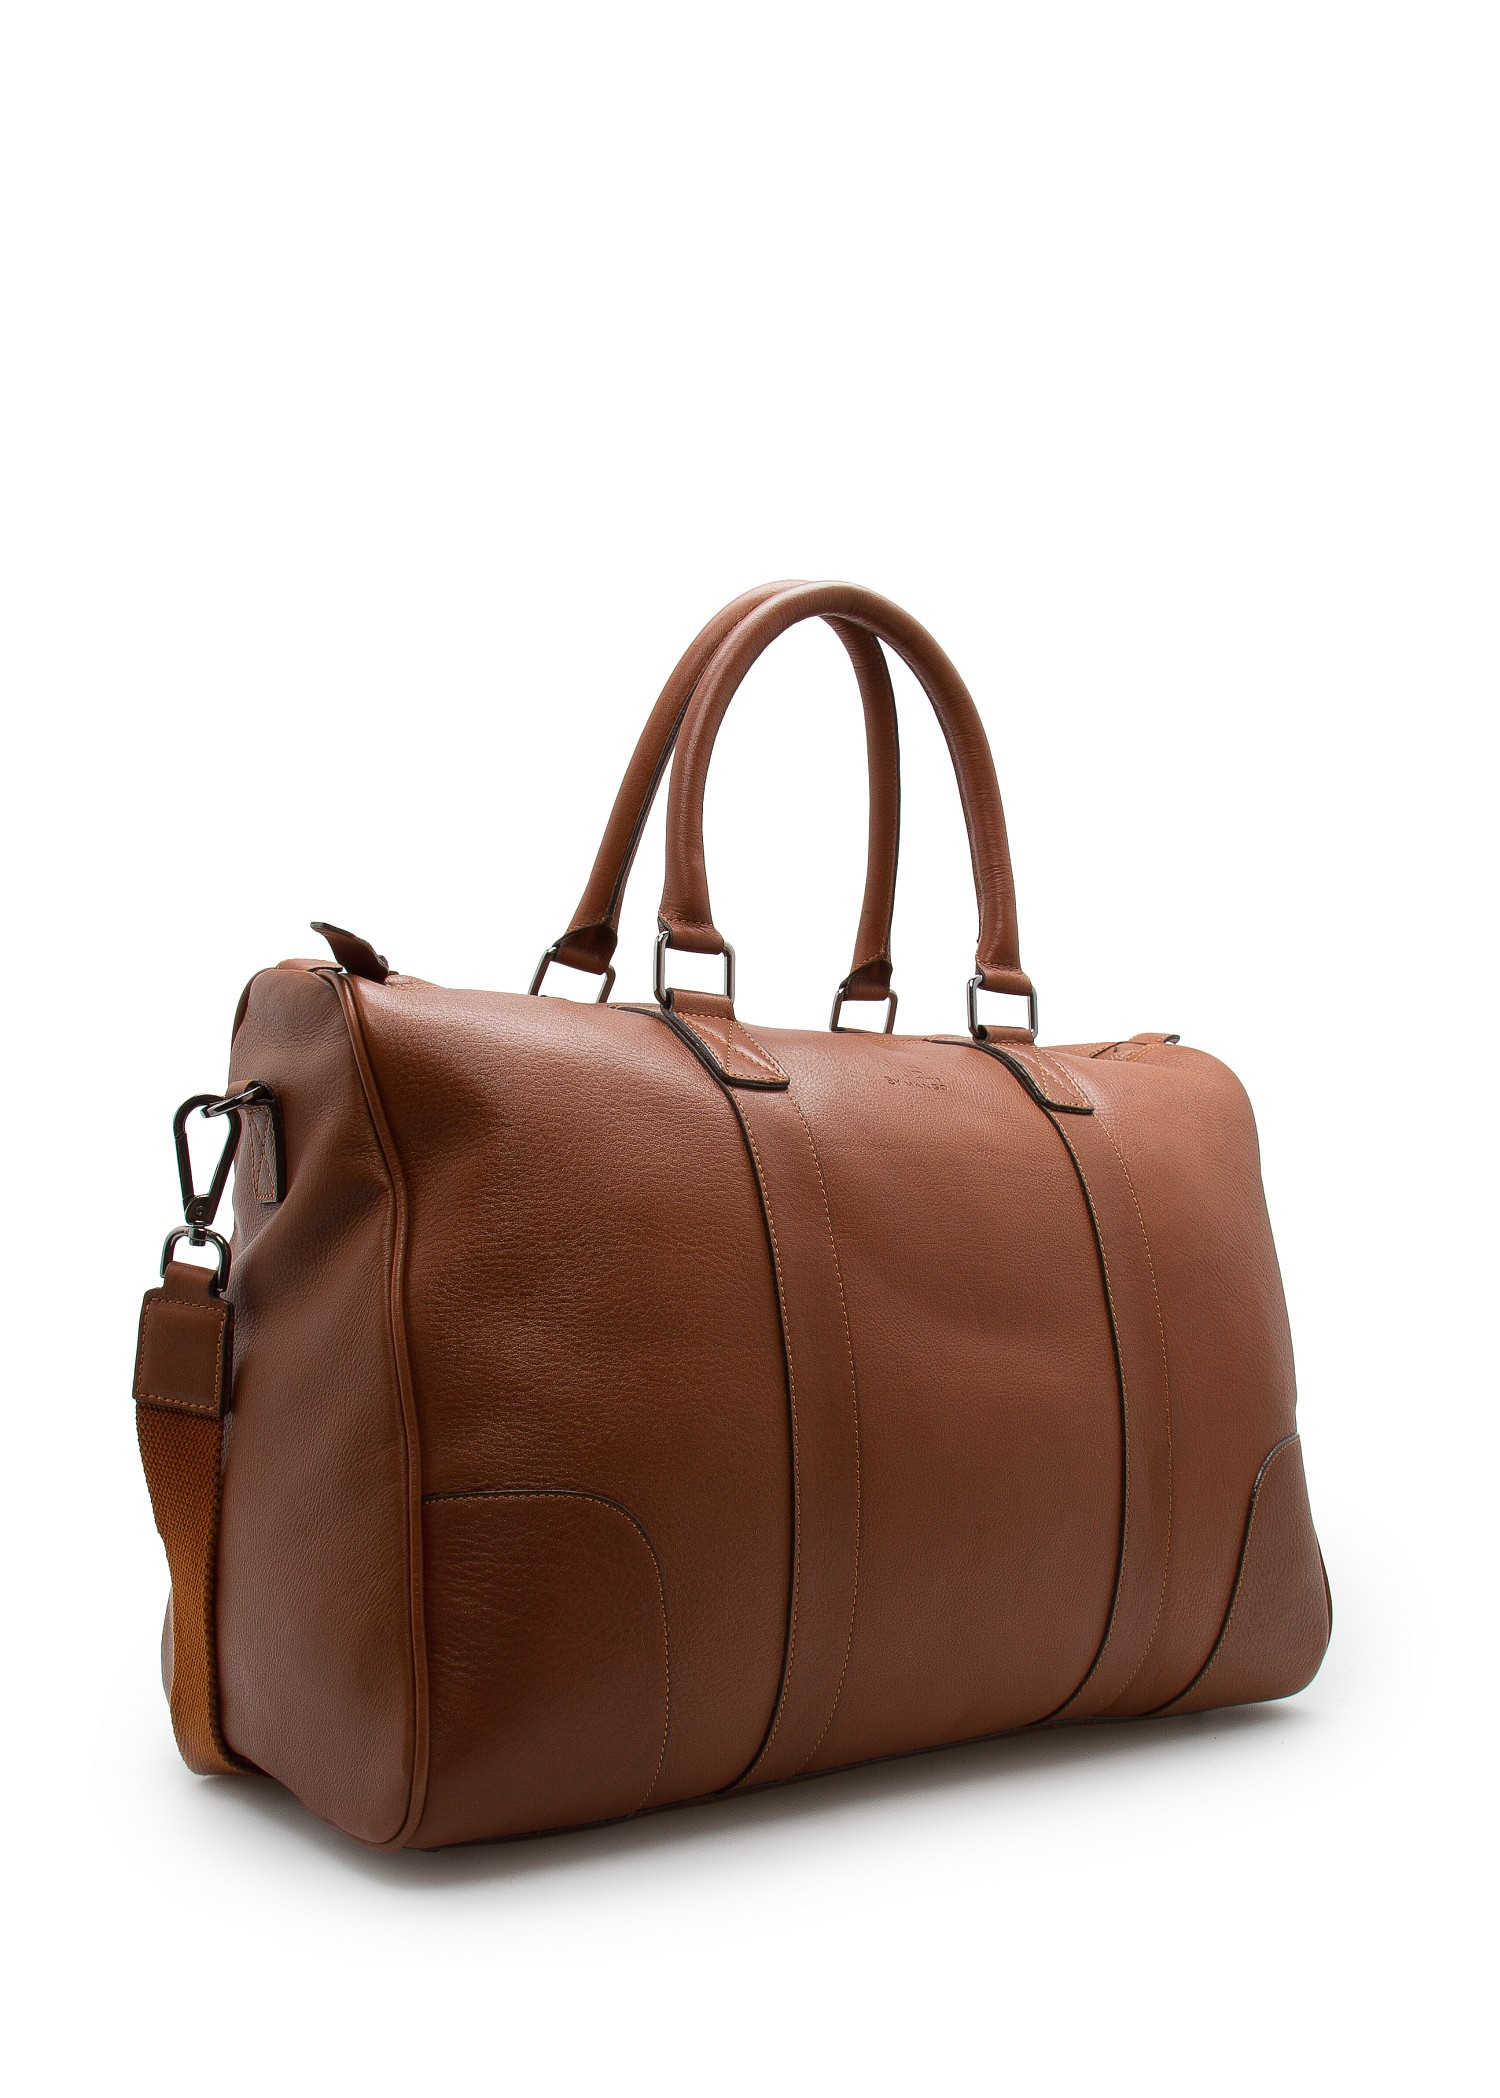 leather weekend bags for men - photo #9